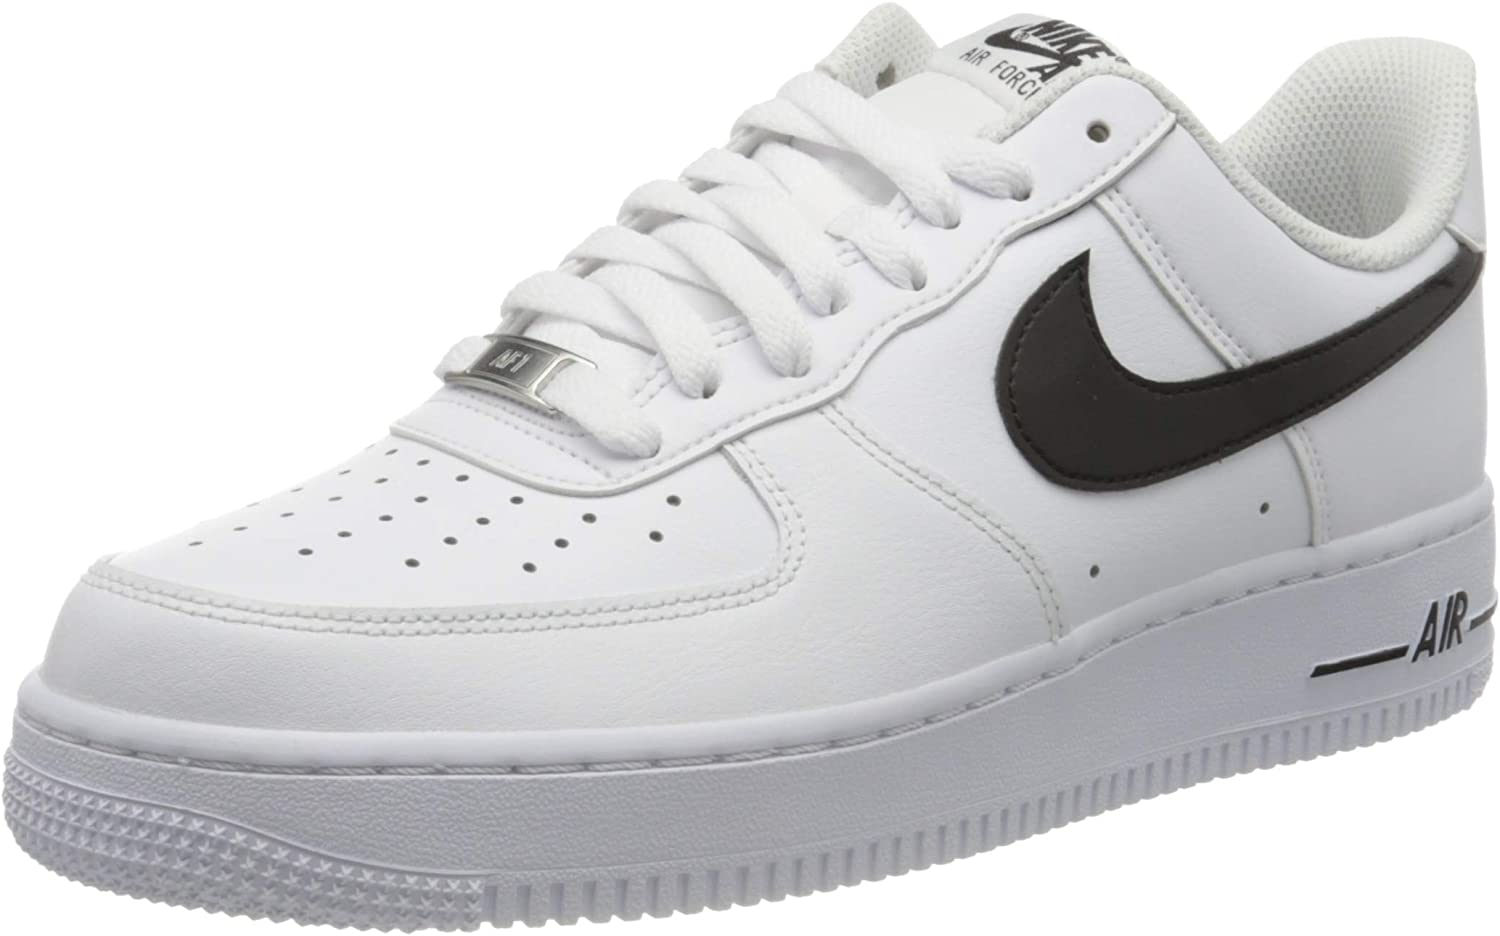 Nike Men's AIR Force 1 '07 Casual Shoes